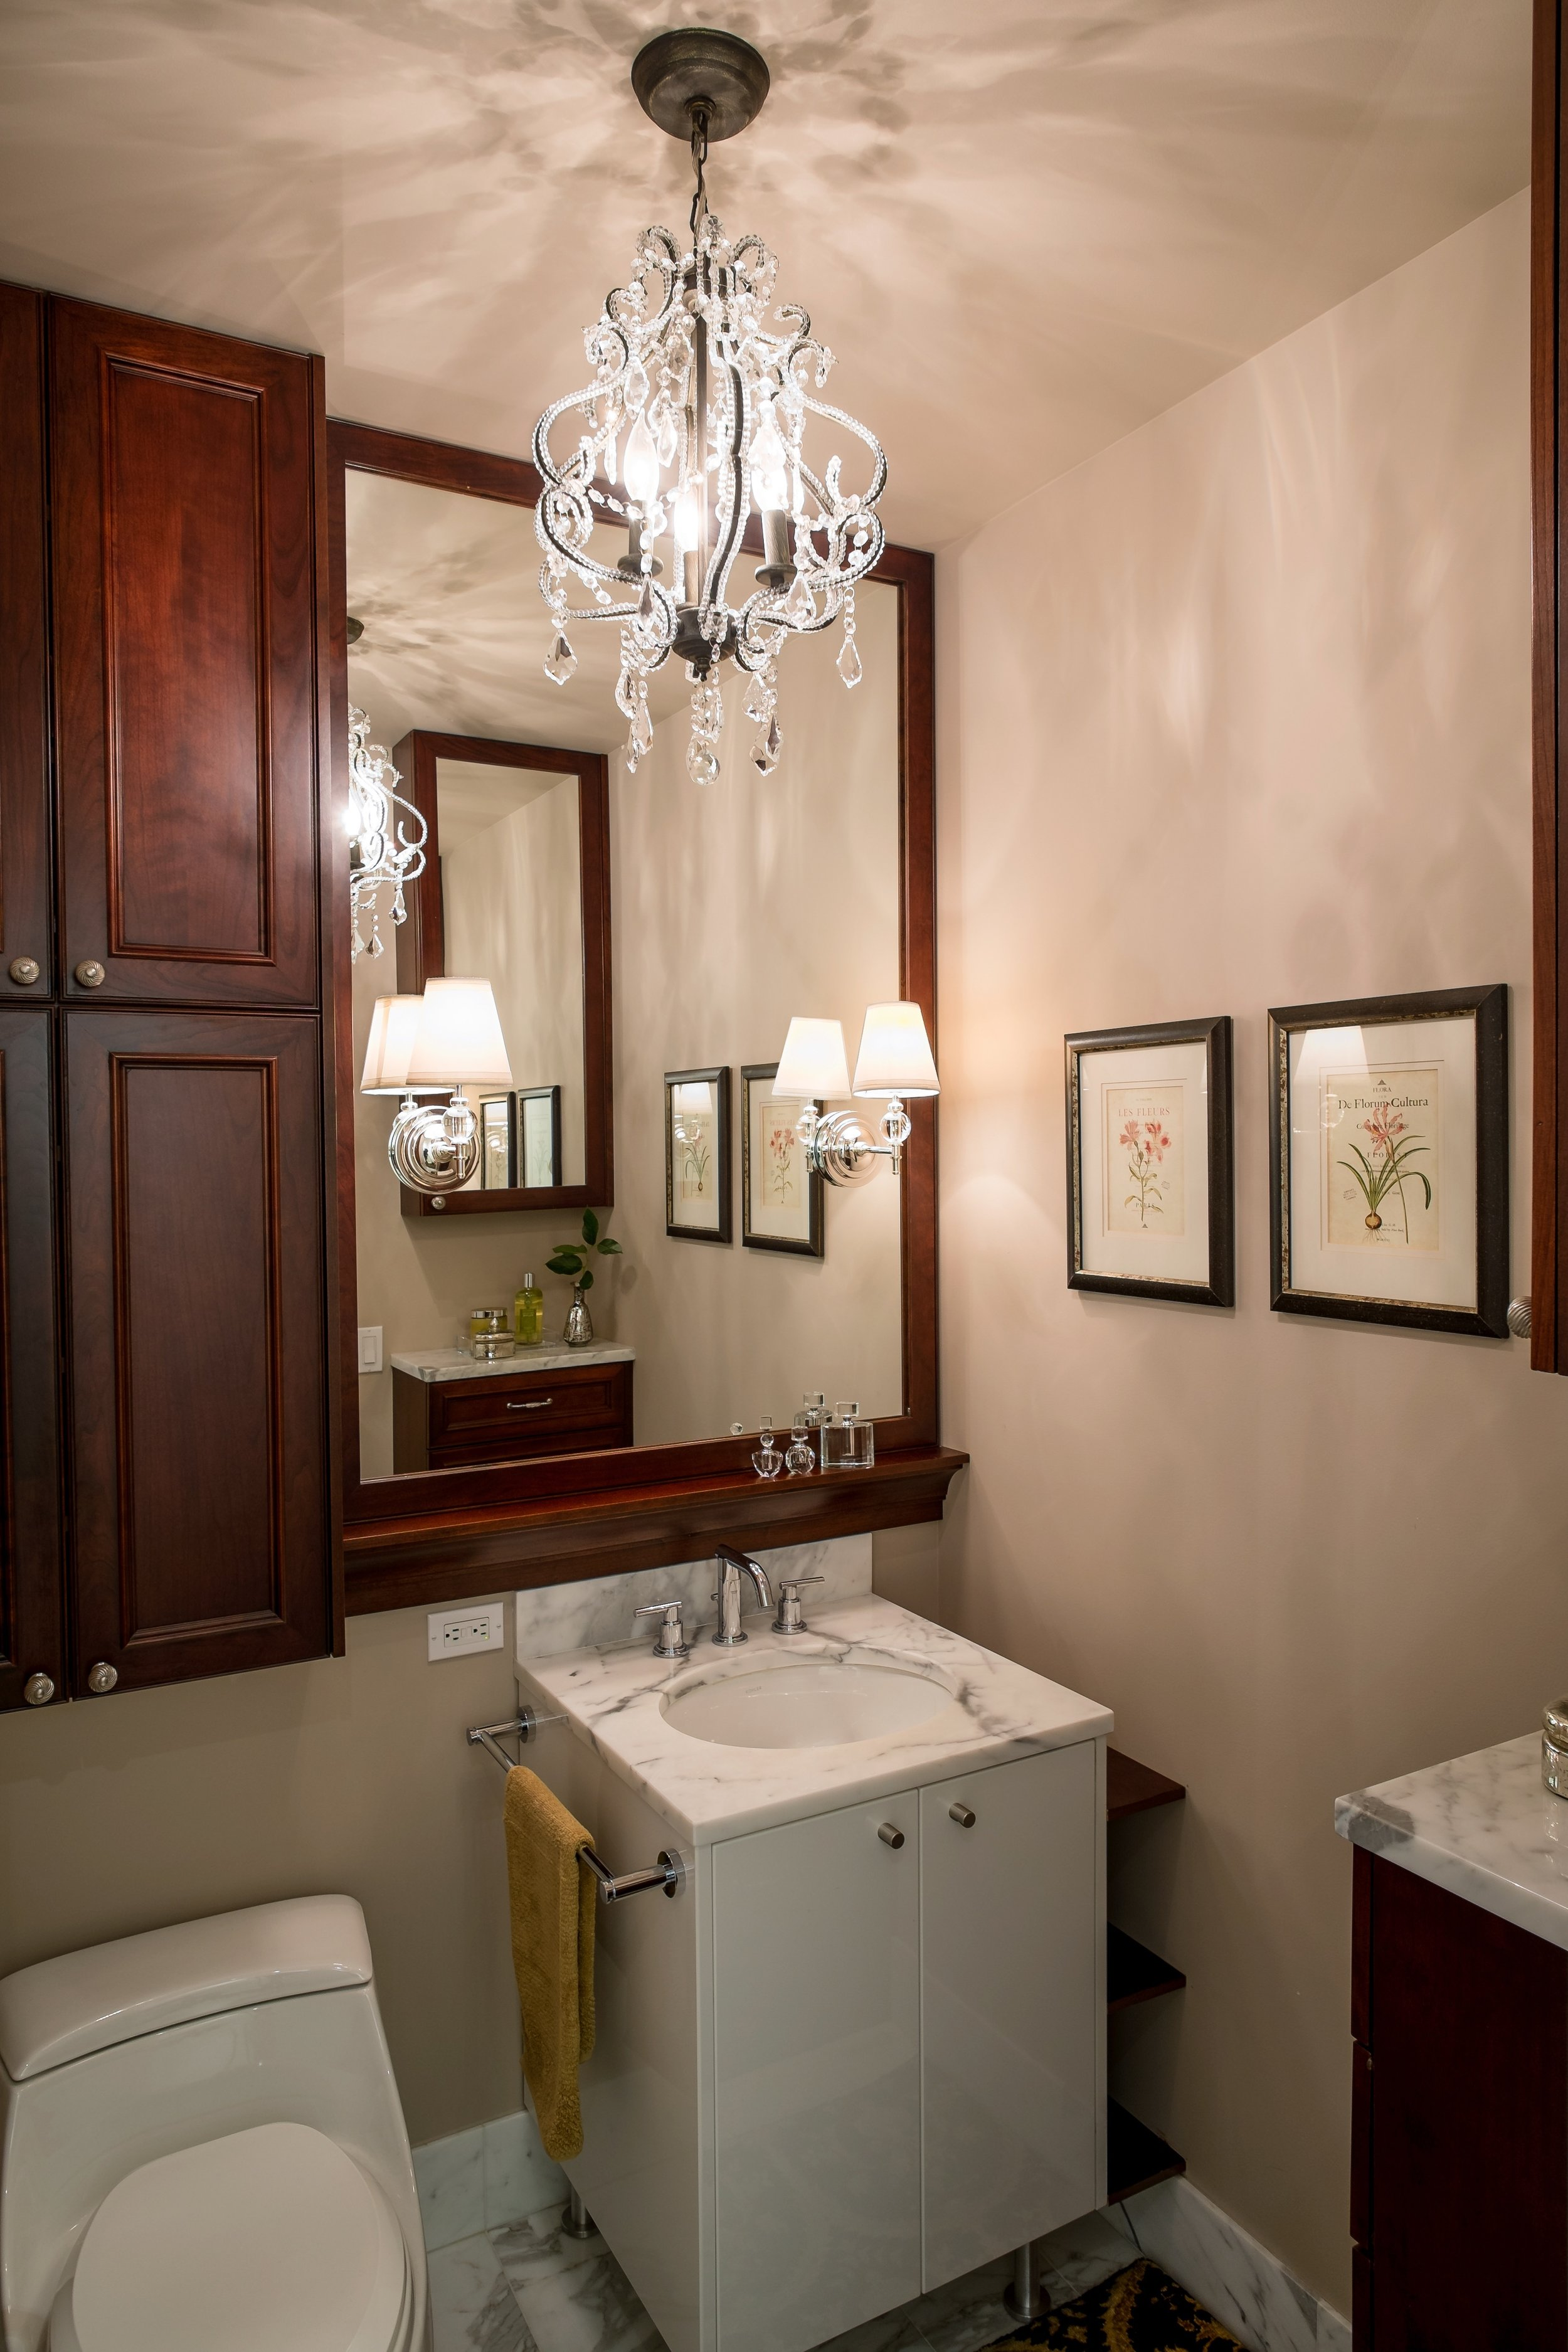 Beautiful bathroom design after image, clean, modern, traditional and fresh